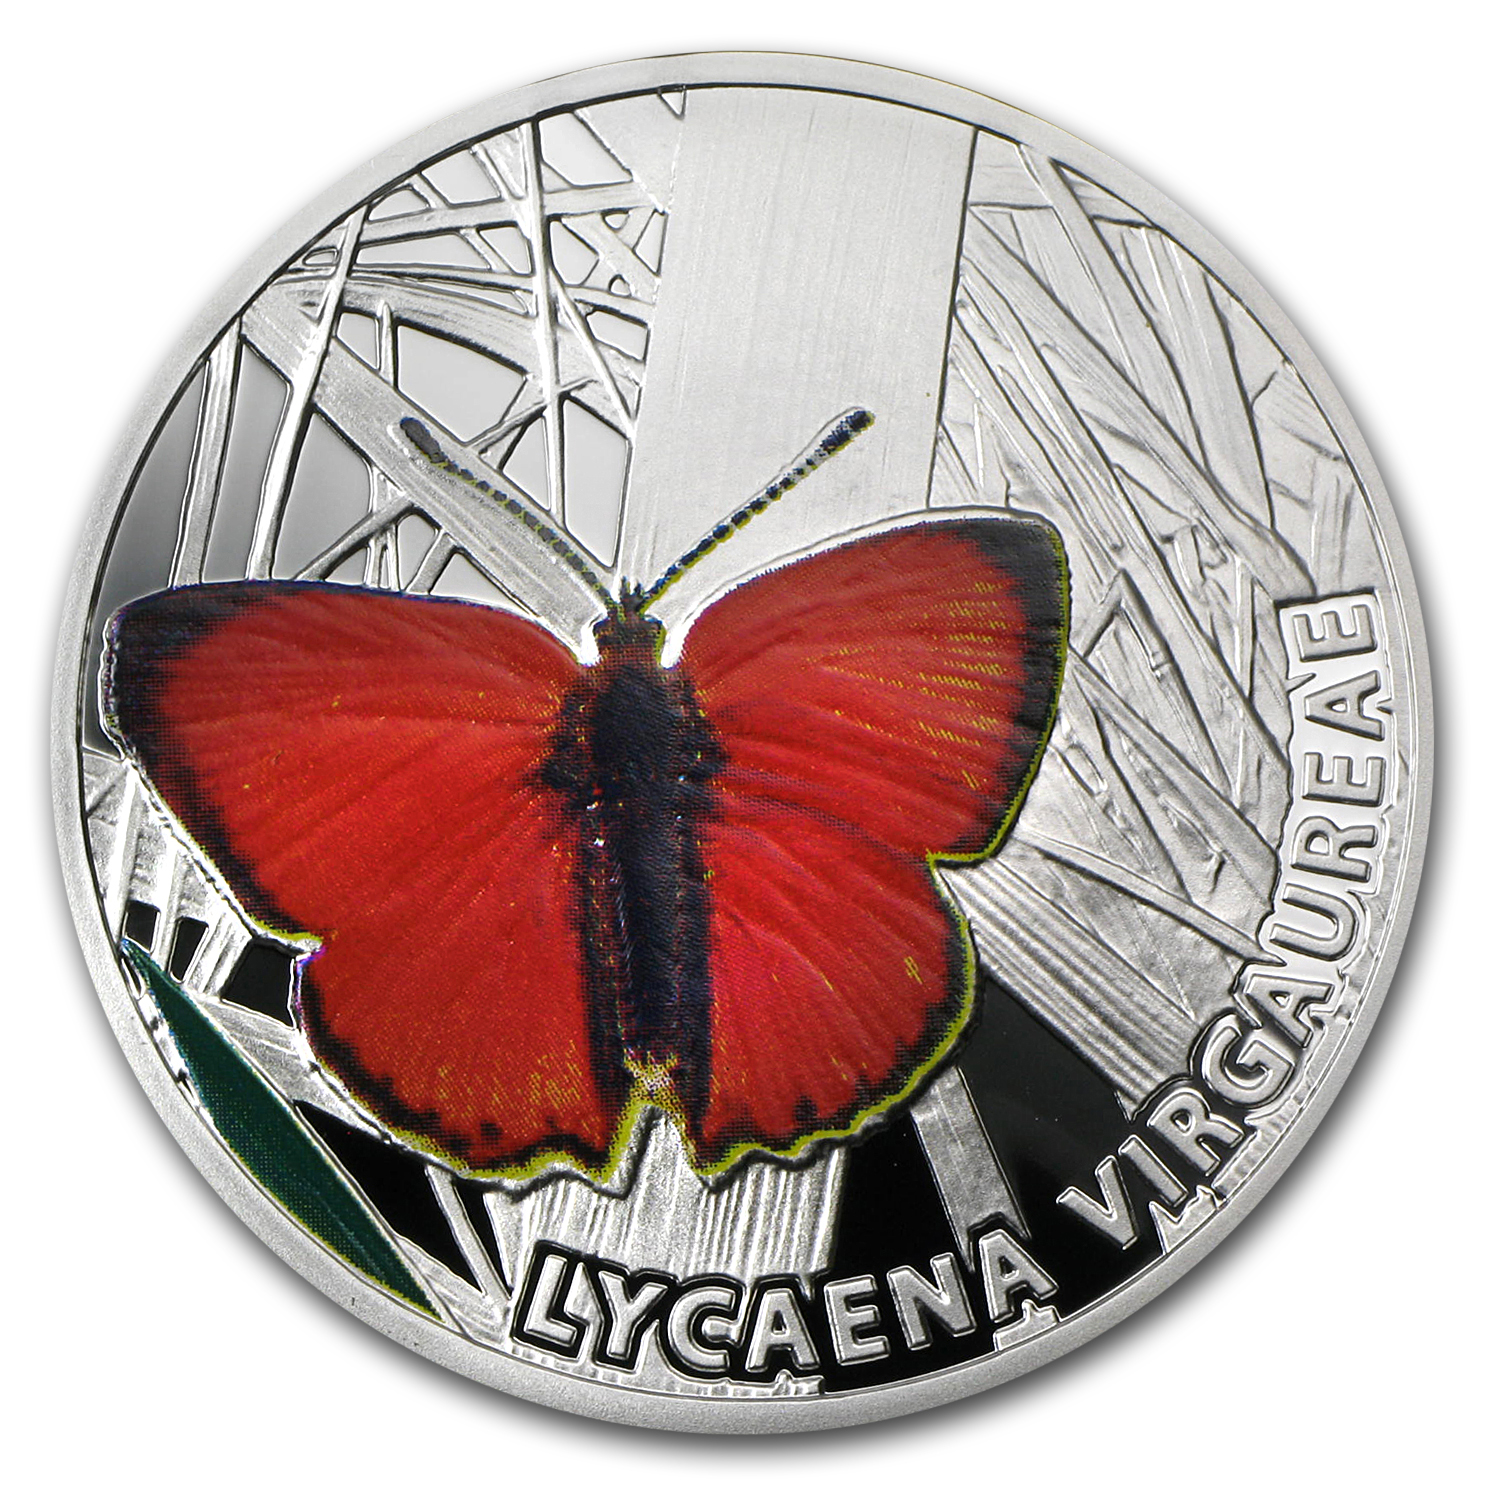 2010 Niue Proof Silver $1 Butterflies Scarce Copper